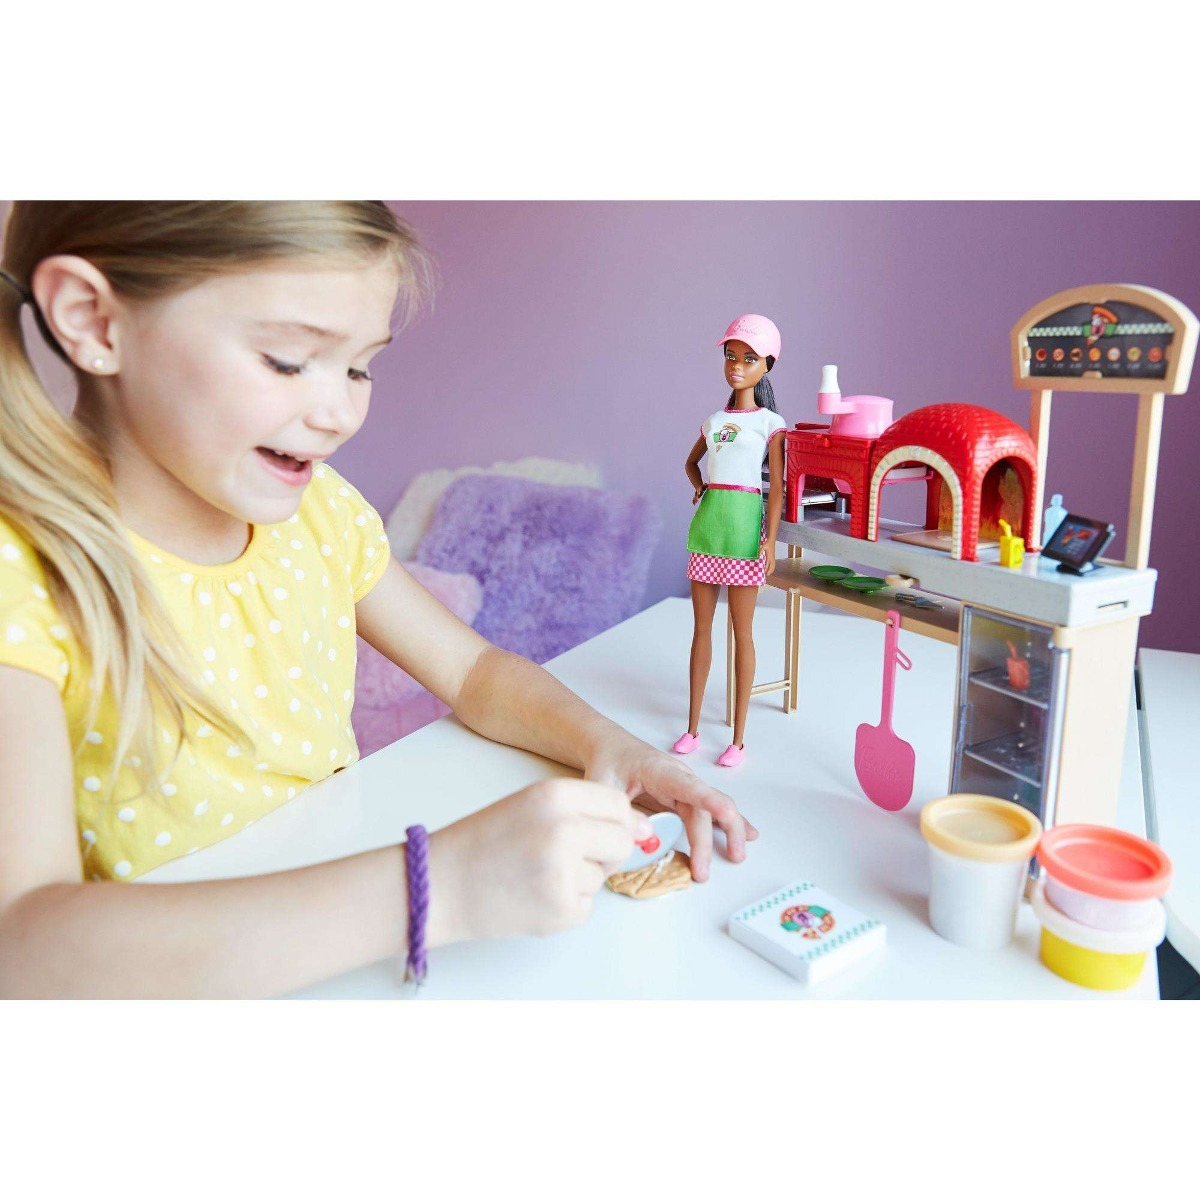 Muneca Barbie Chef Cocinar Y Hornear Pizza Y Set De 325 550 En